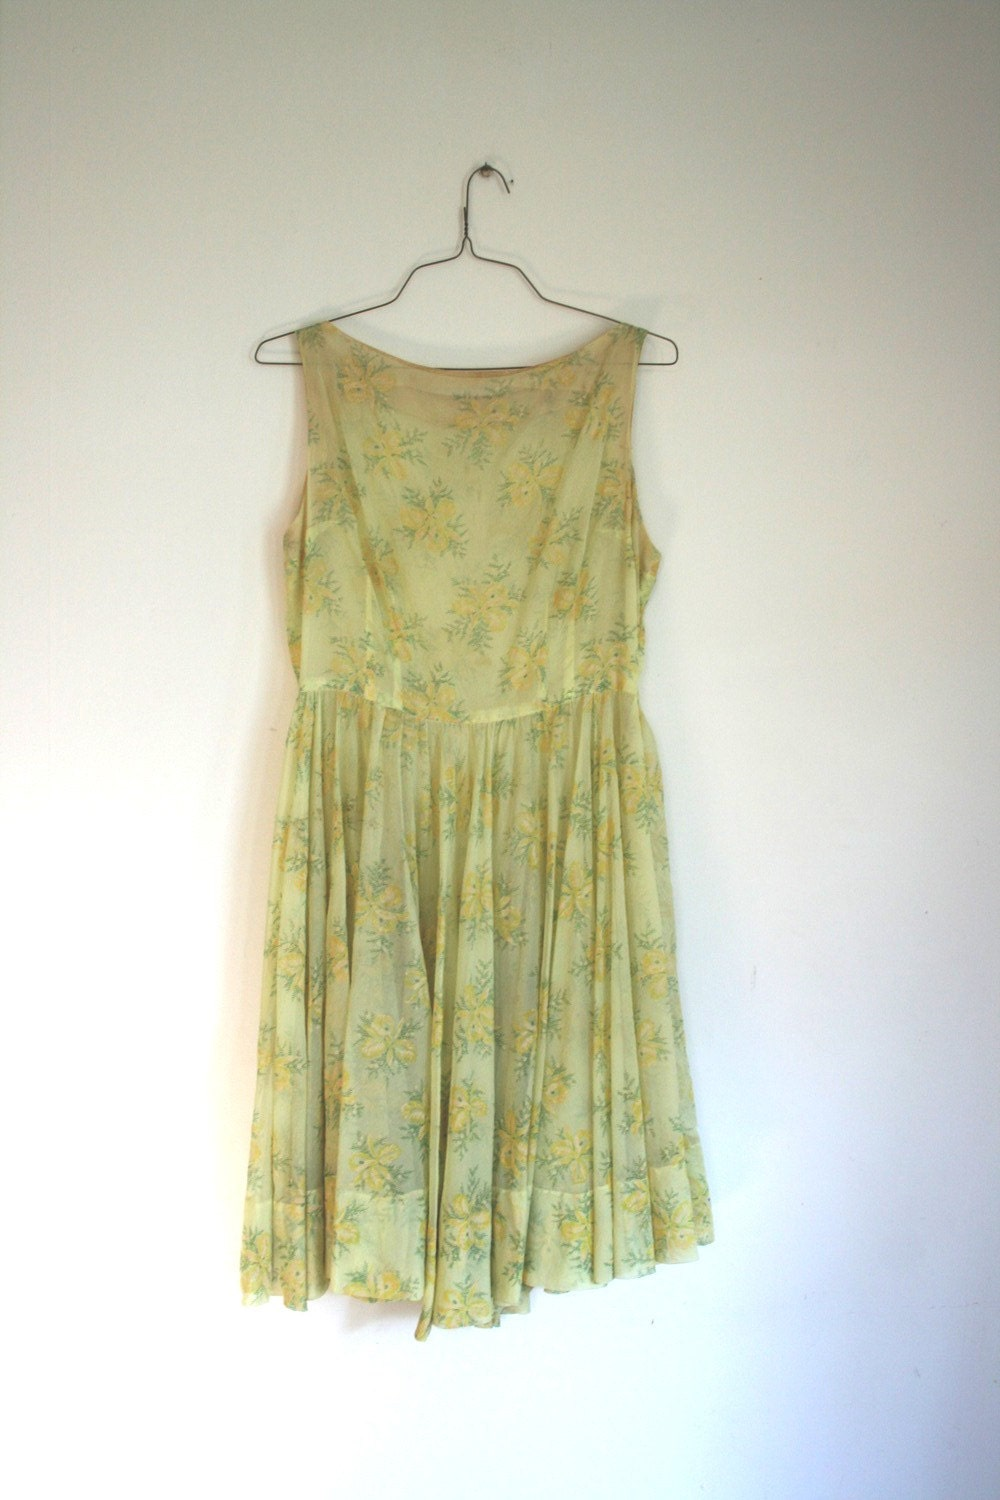 Ethereal Floral Yellow Garden Party Dress - M/L